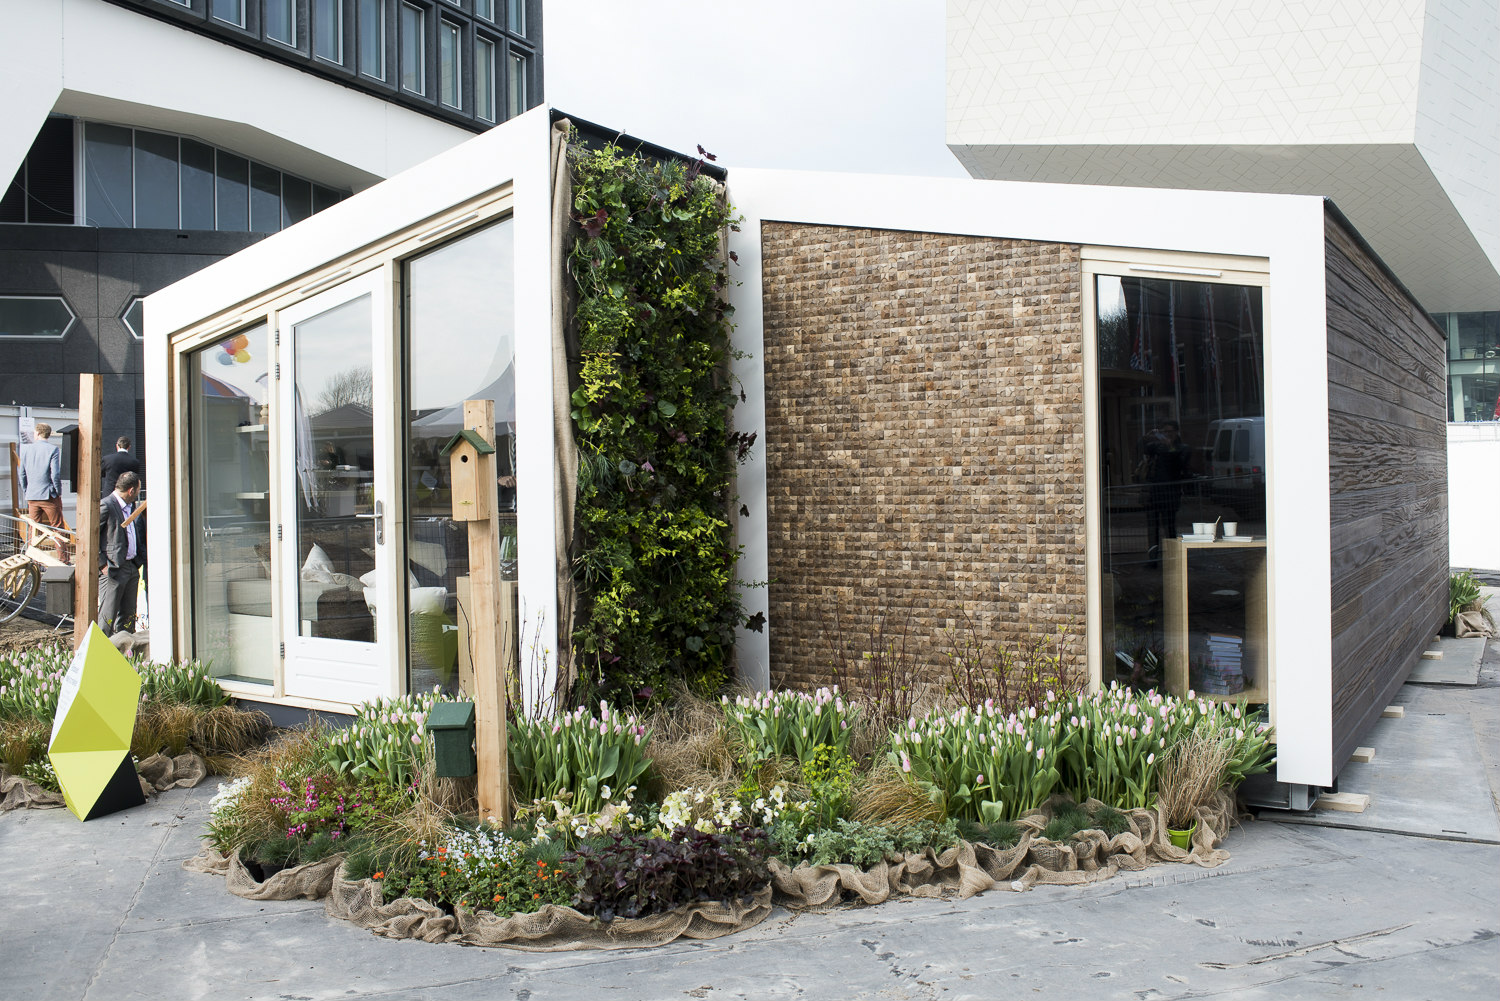 Biobased Huis op Innovation Expo